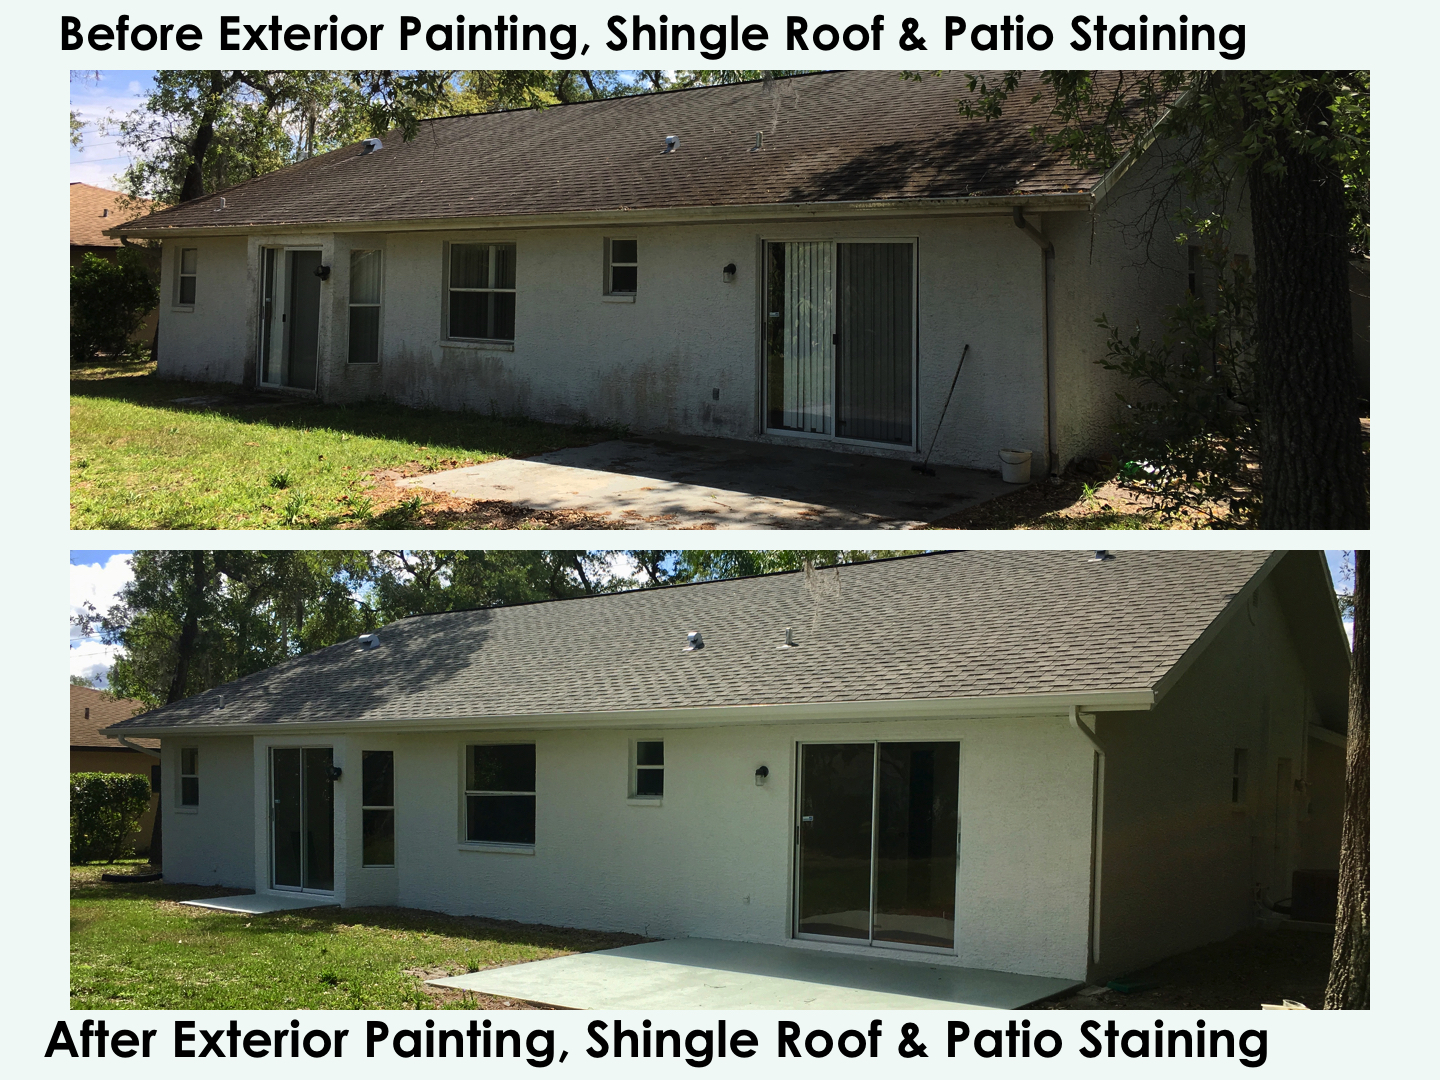 39 Before After Exterior Painting Shingle Roof Cleaning And Patio Staining